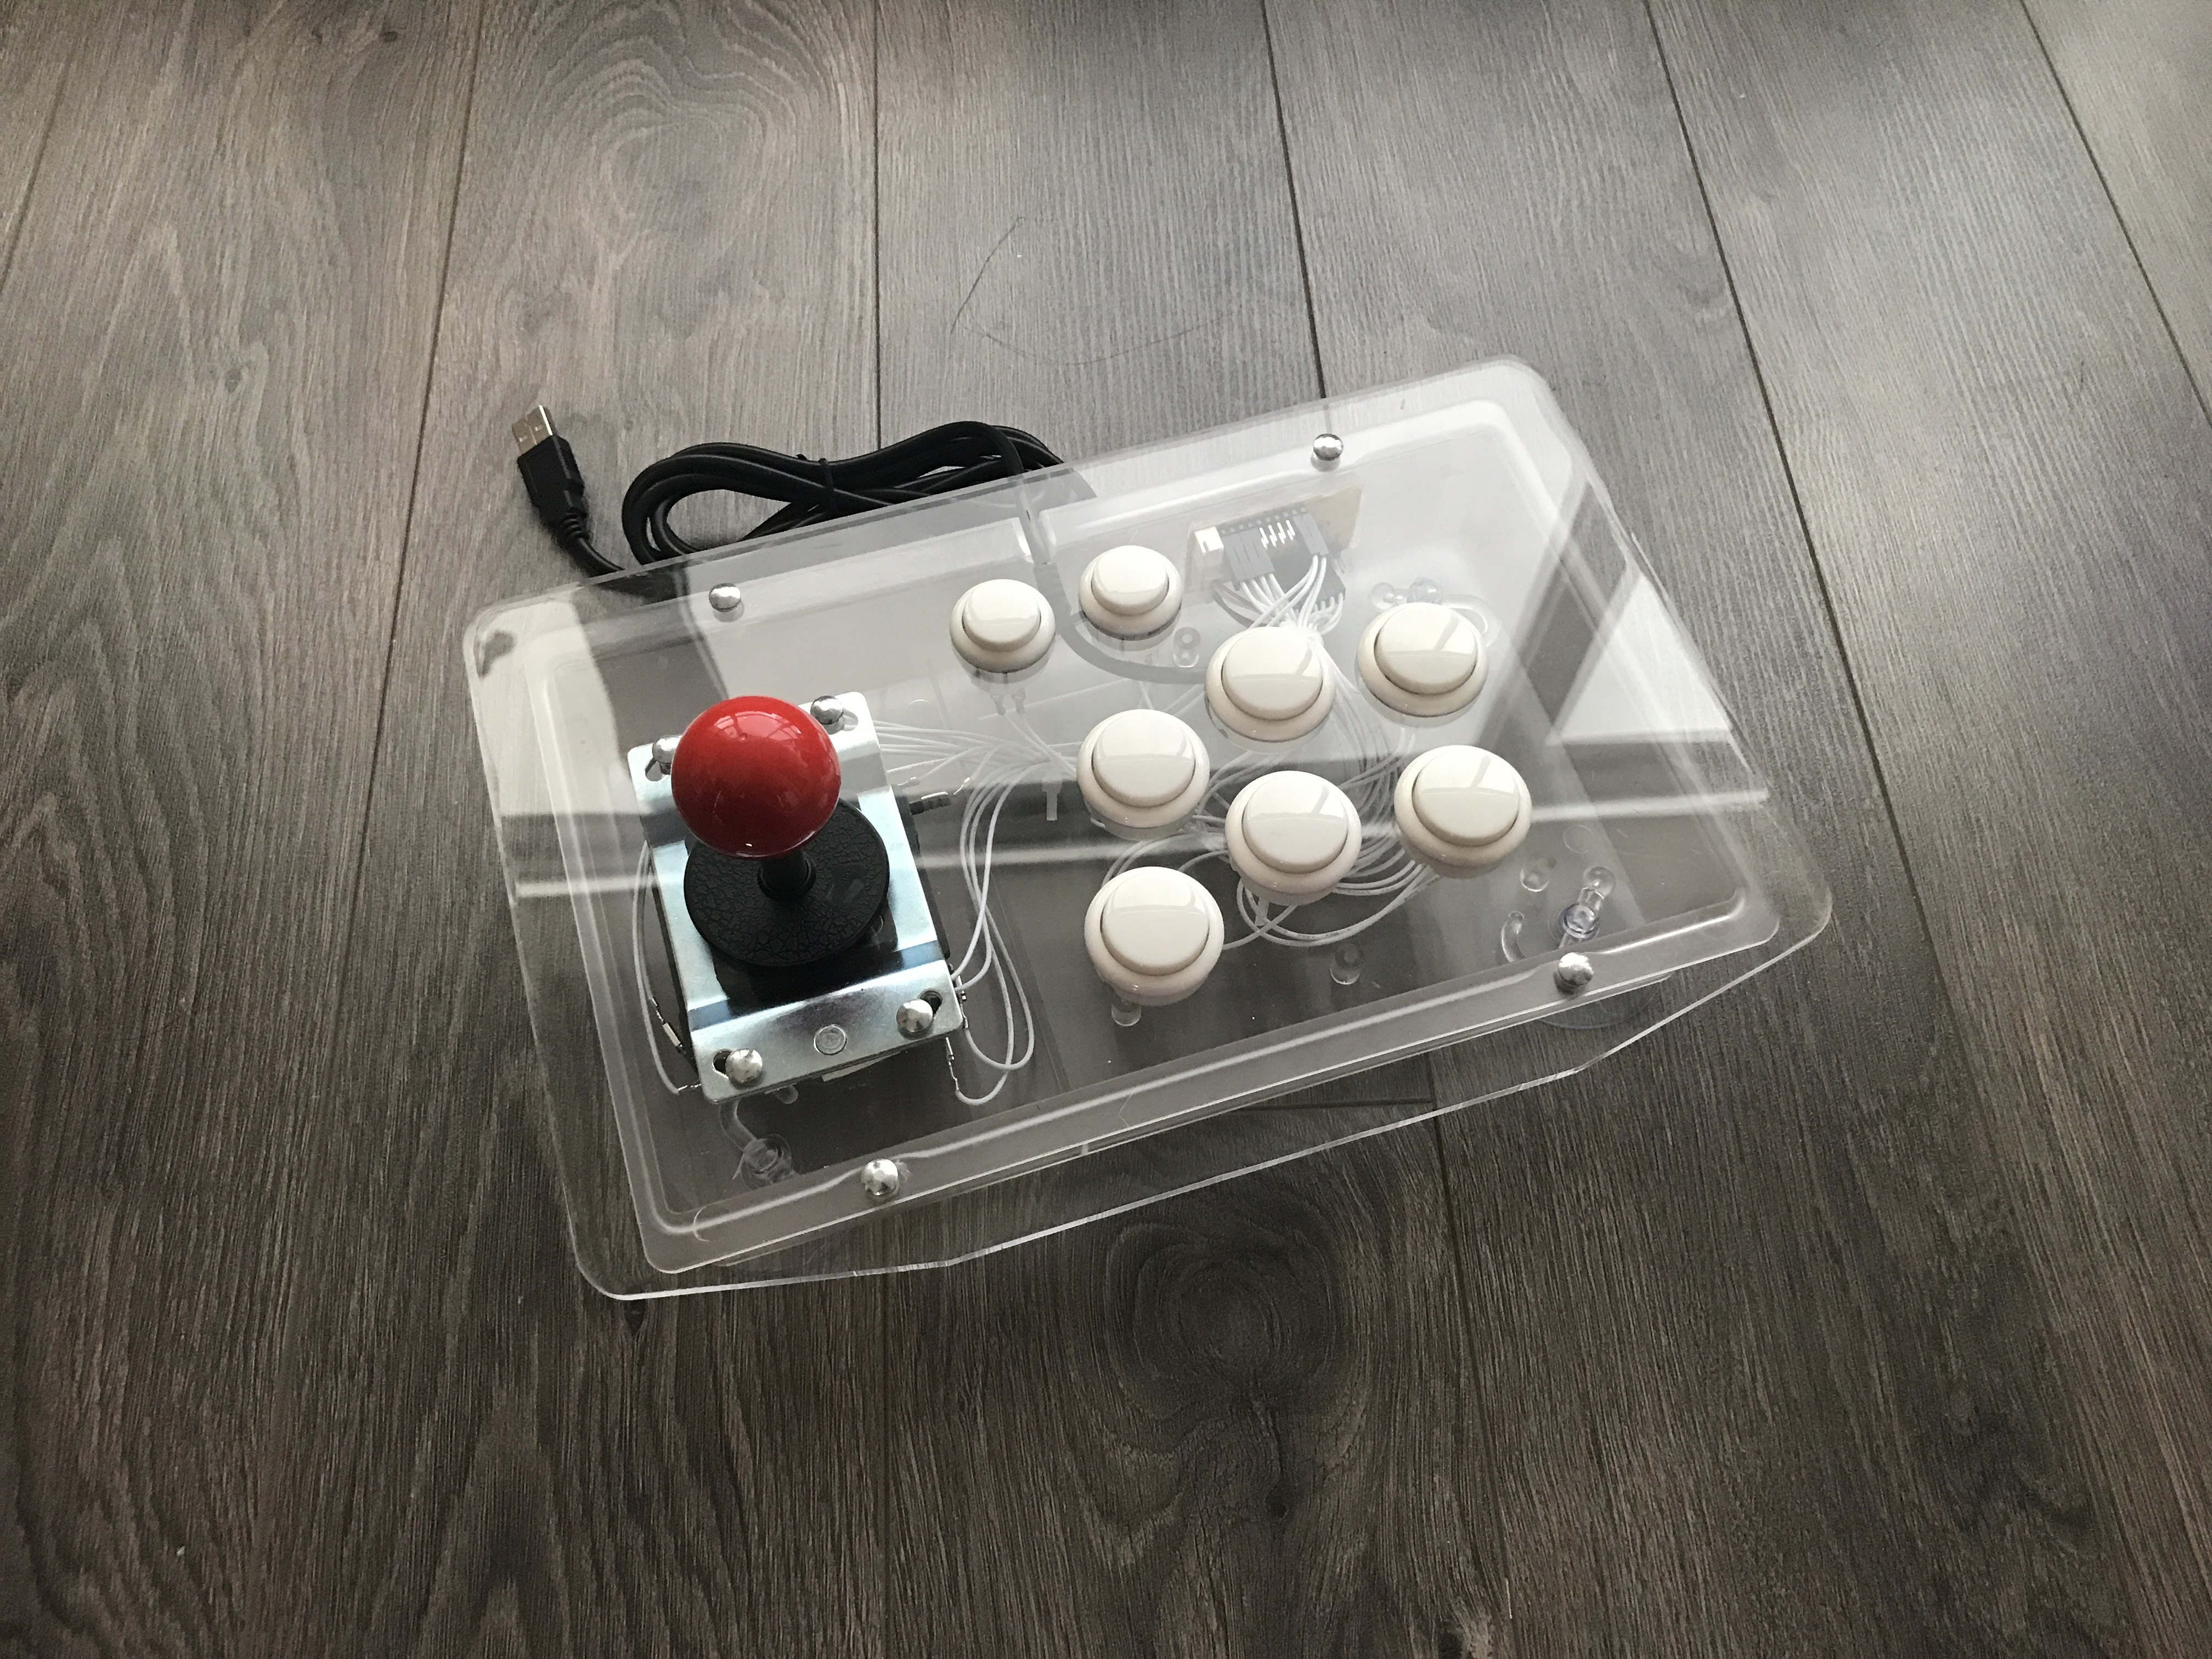 Picture of Raspberry Pi Inside Arcade Stick